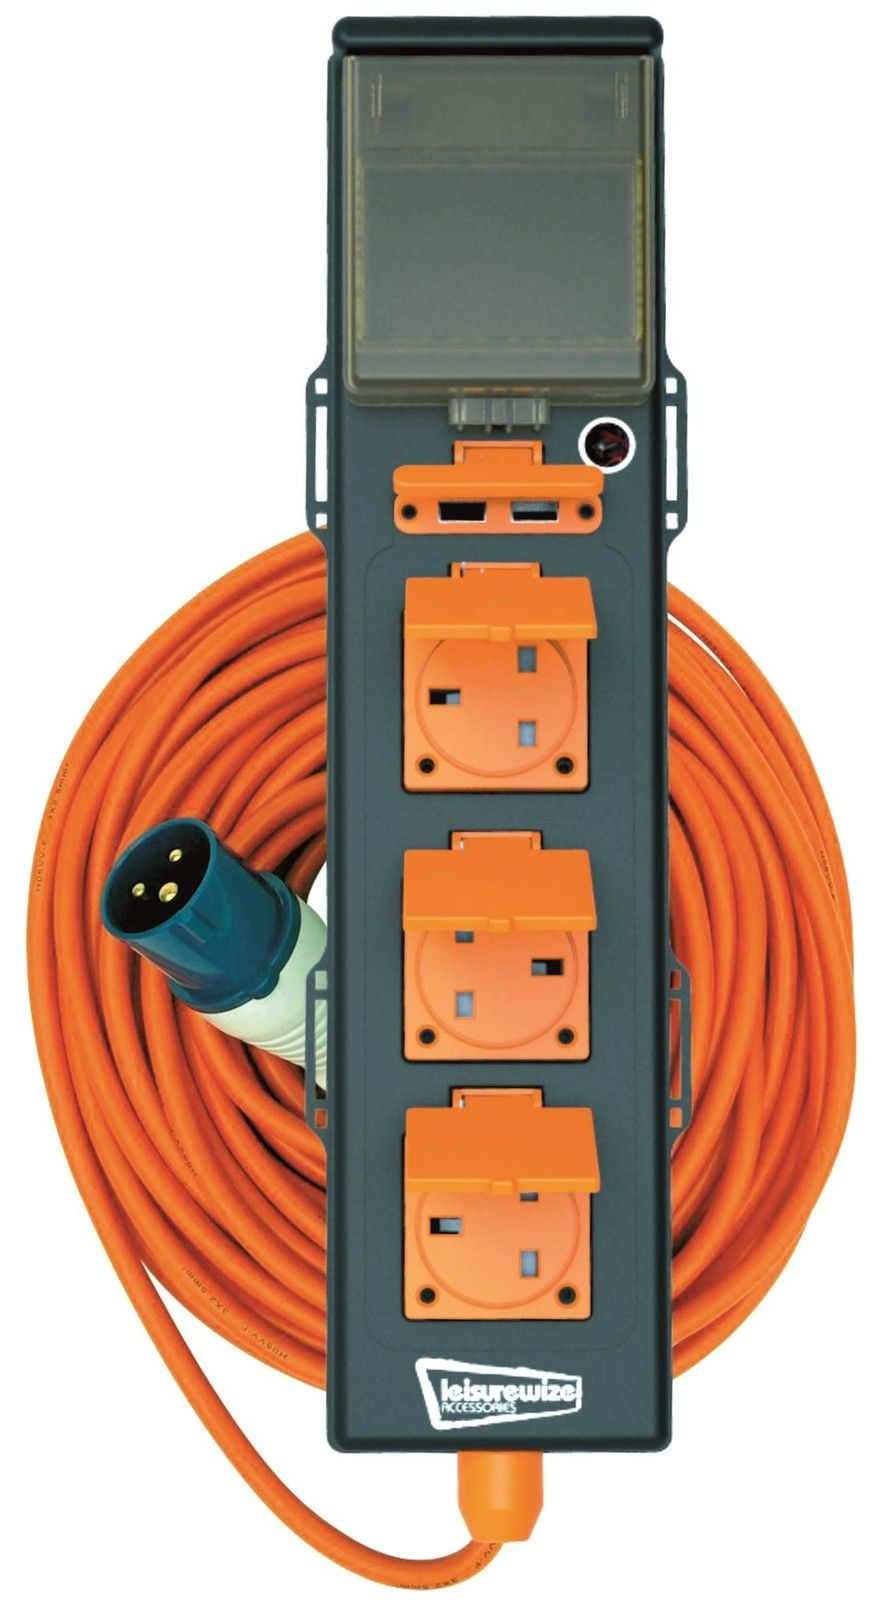 Leisurewize 5 Way 240v Mobile Mains Unit Rcd In 1 Hook Up Cable Motorhome Electric Wiring